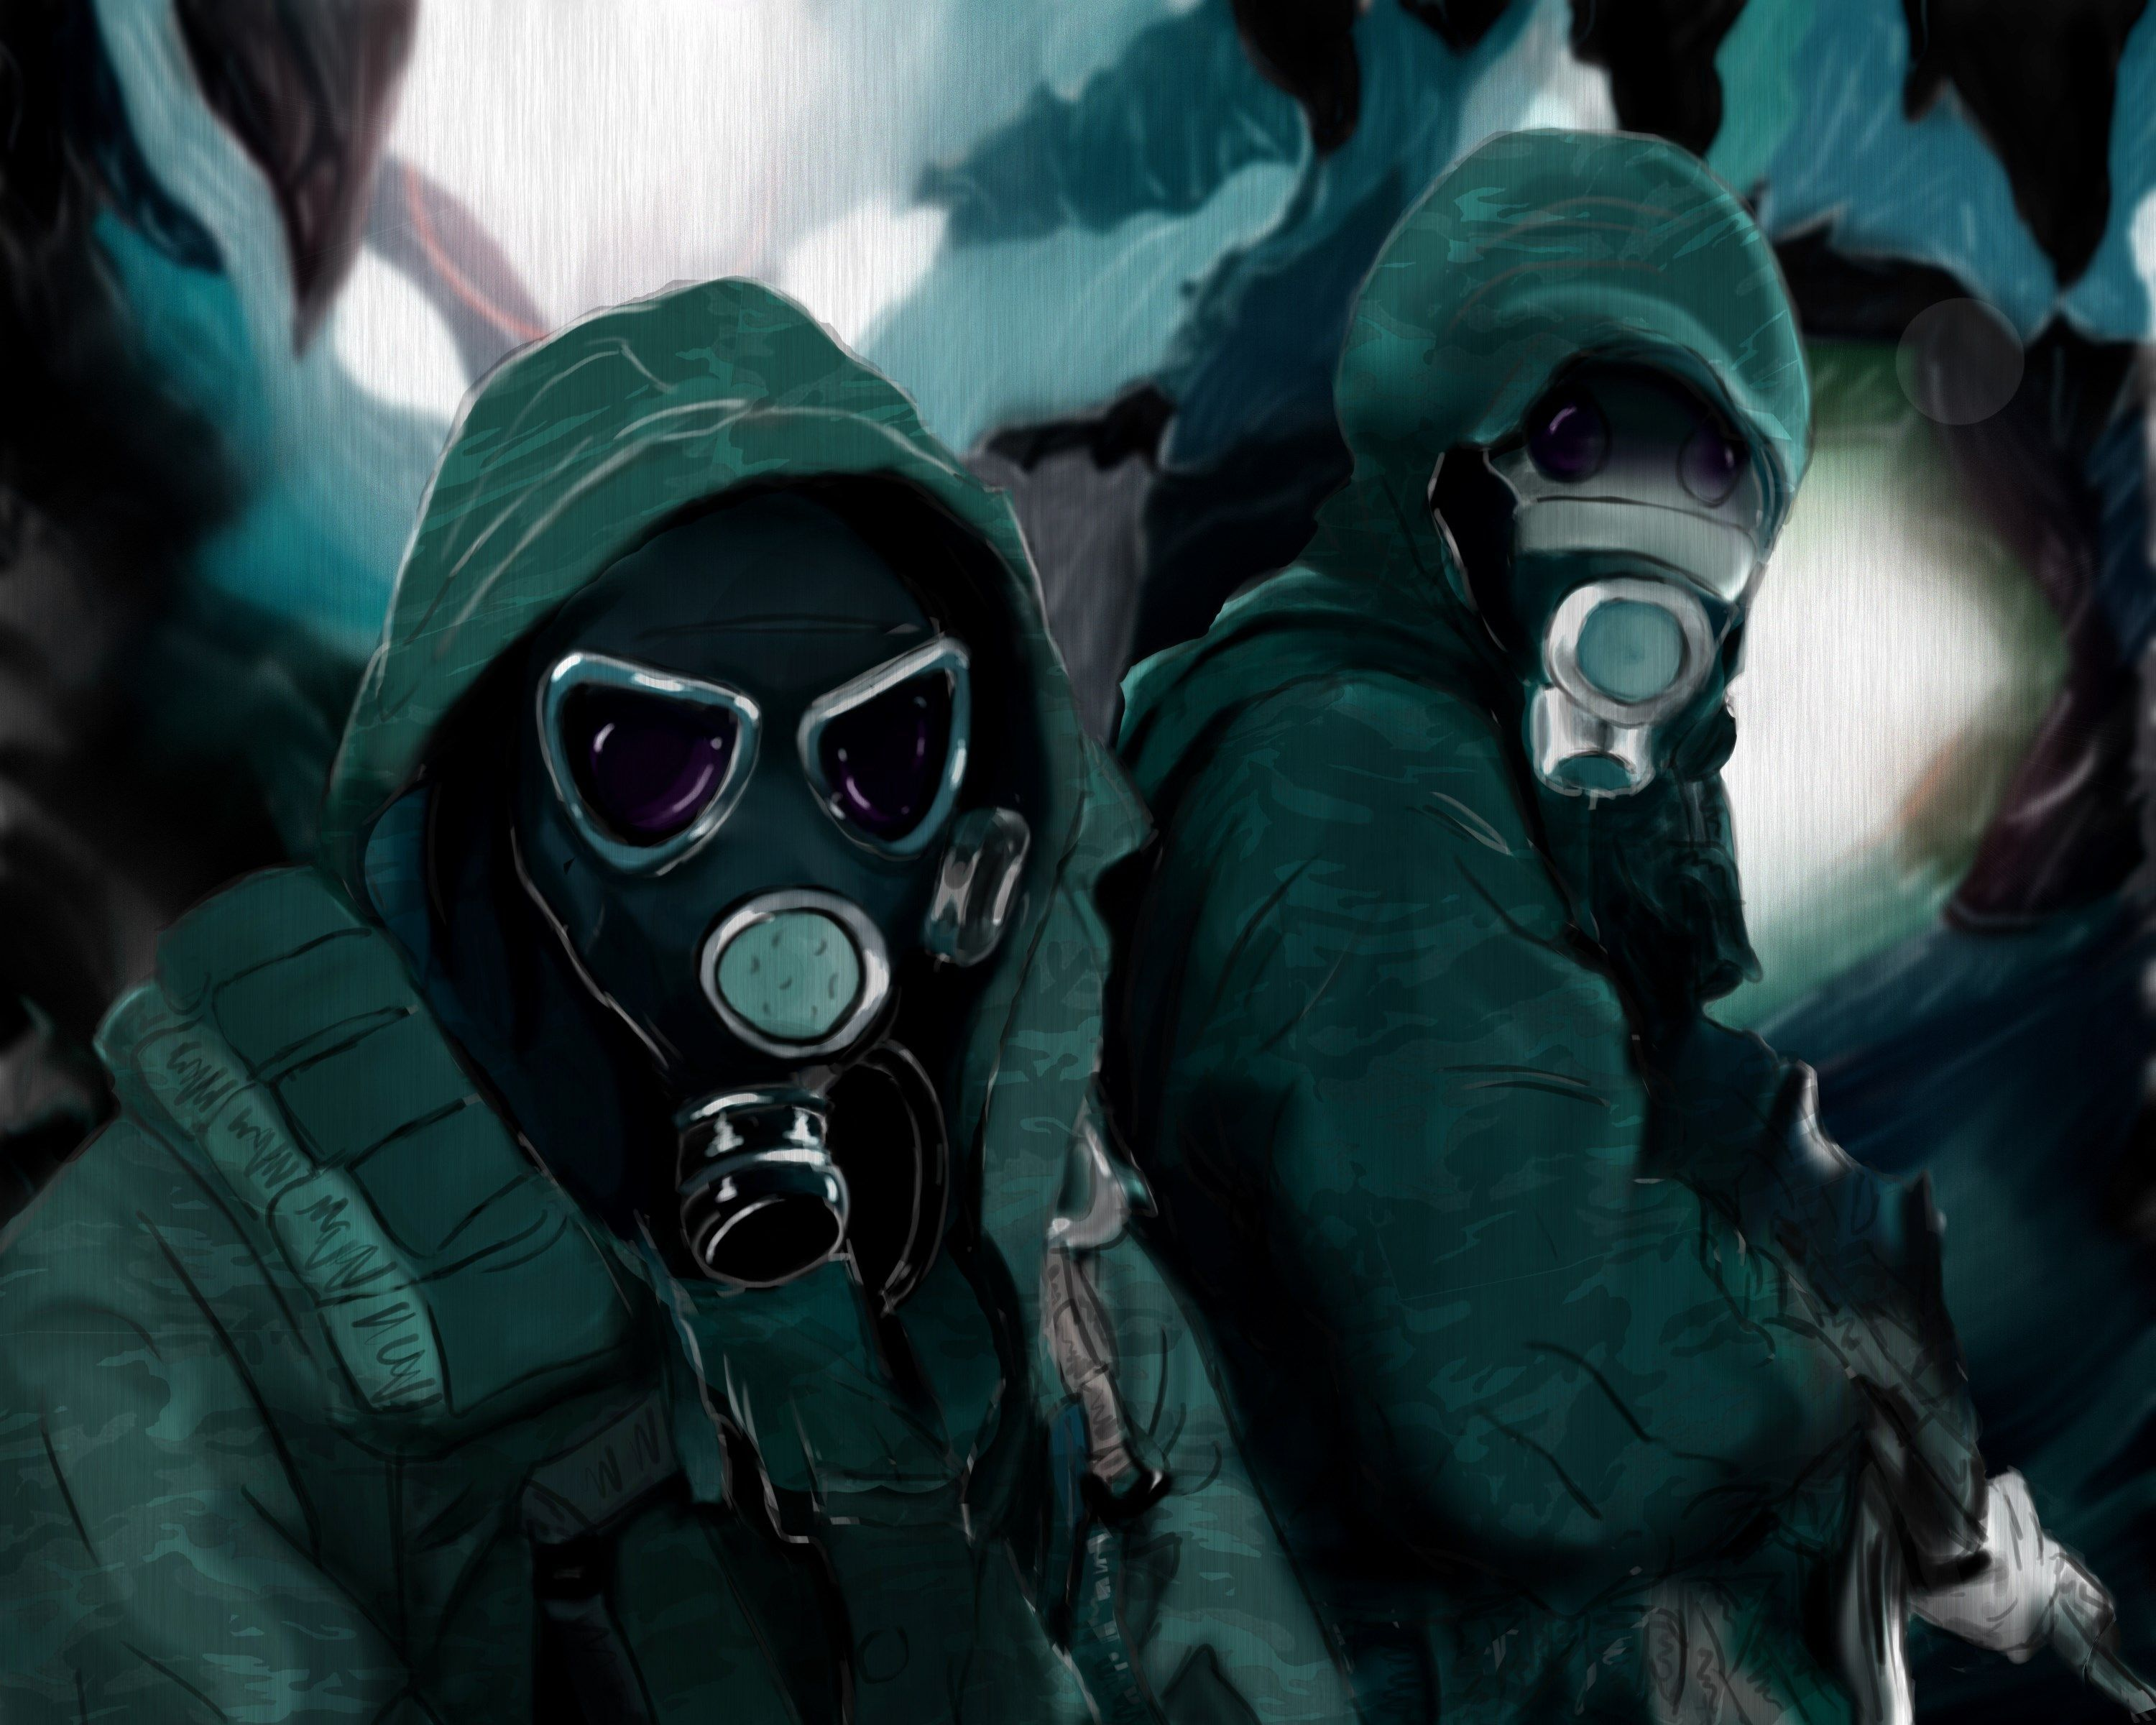 Anime Gas Mask Wallpapers - Top Free Anime Gas Mask Backgrounds